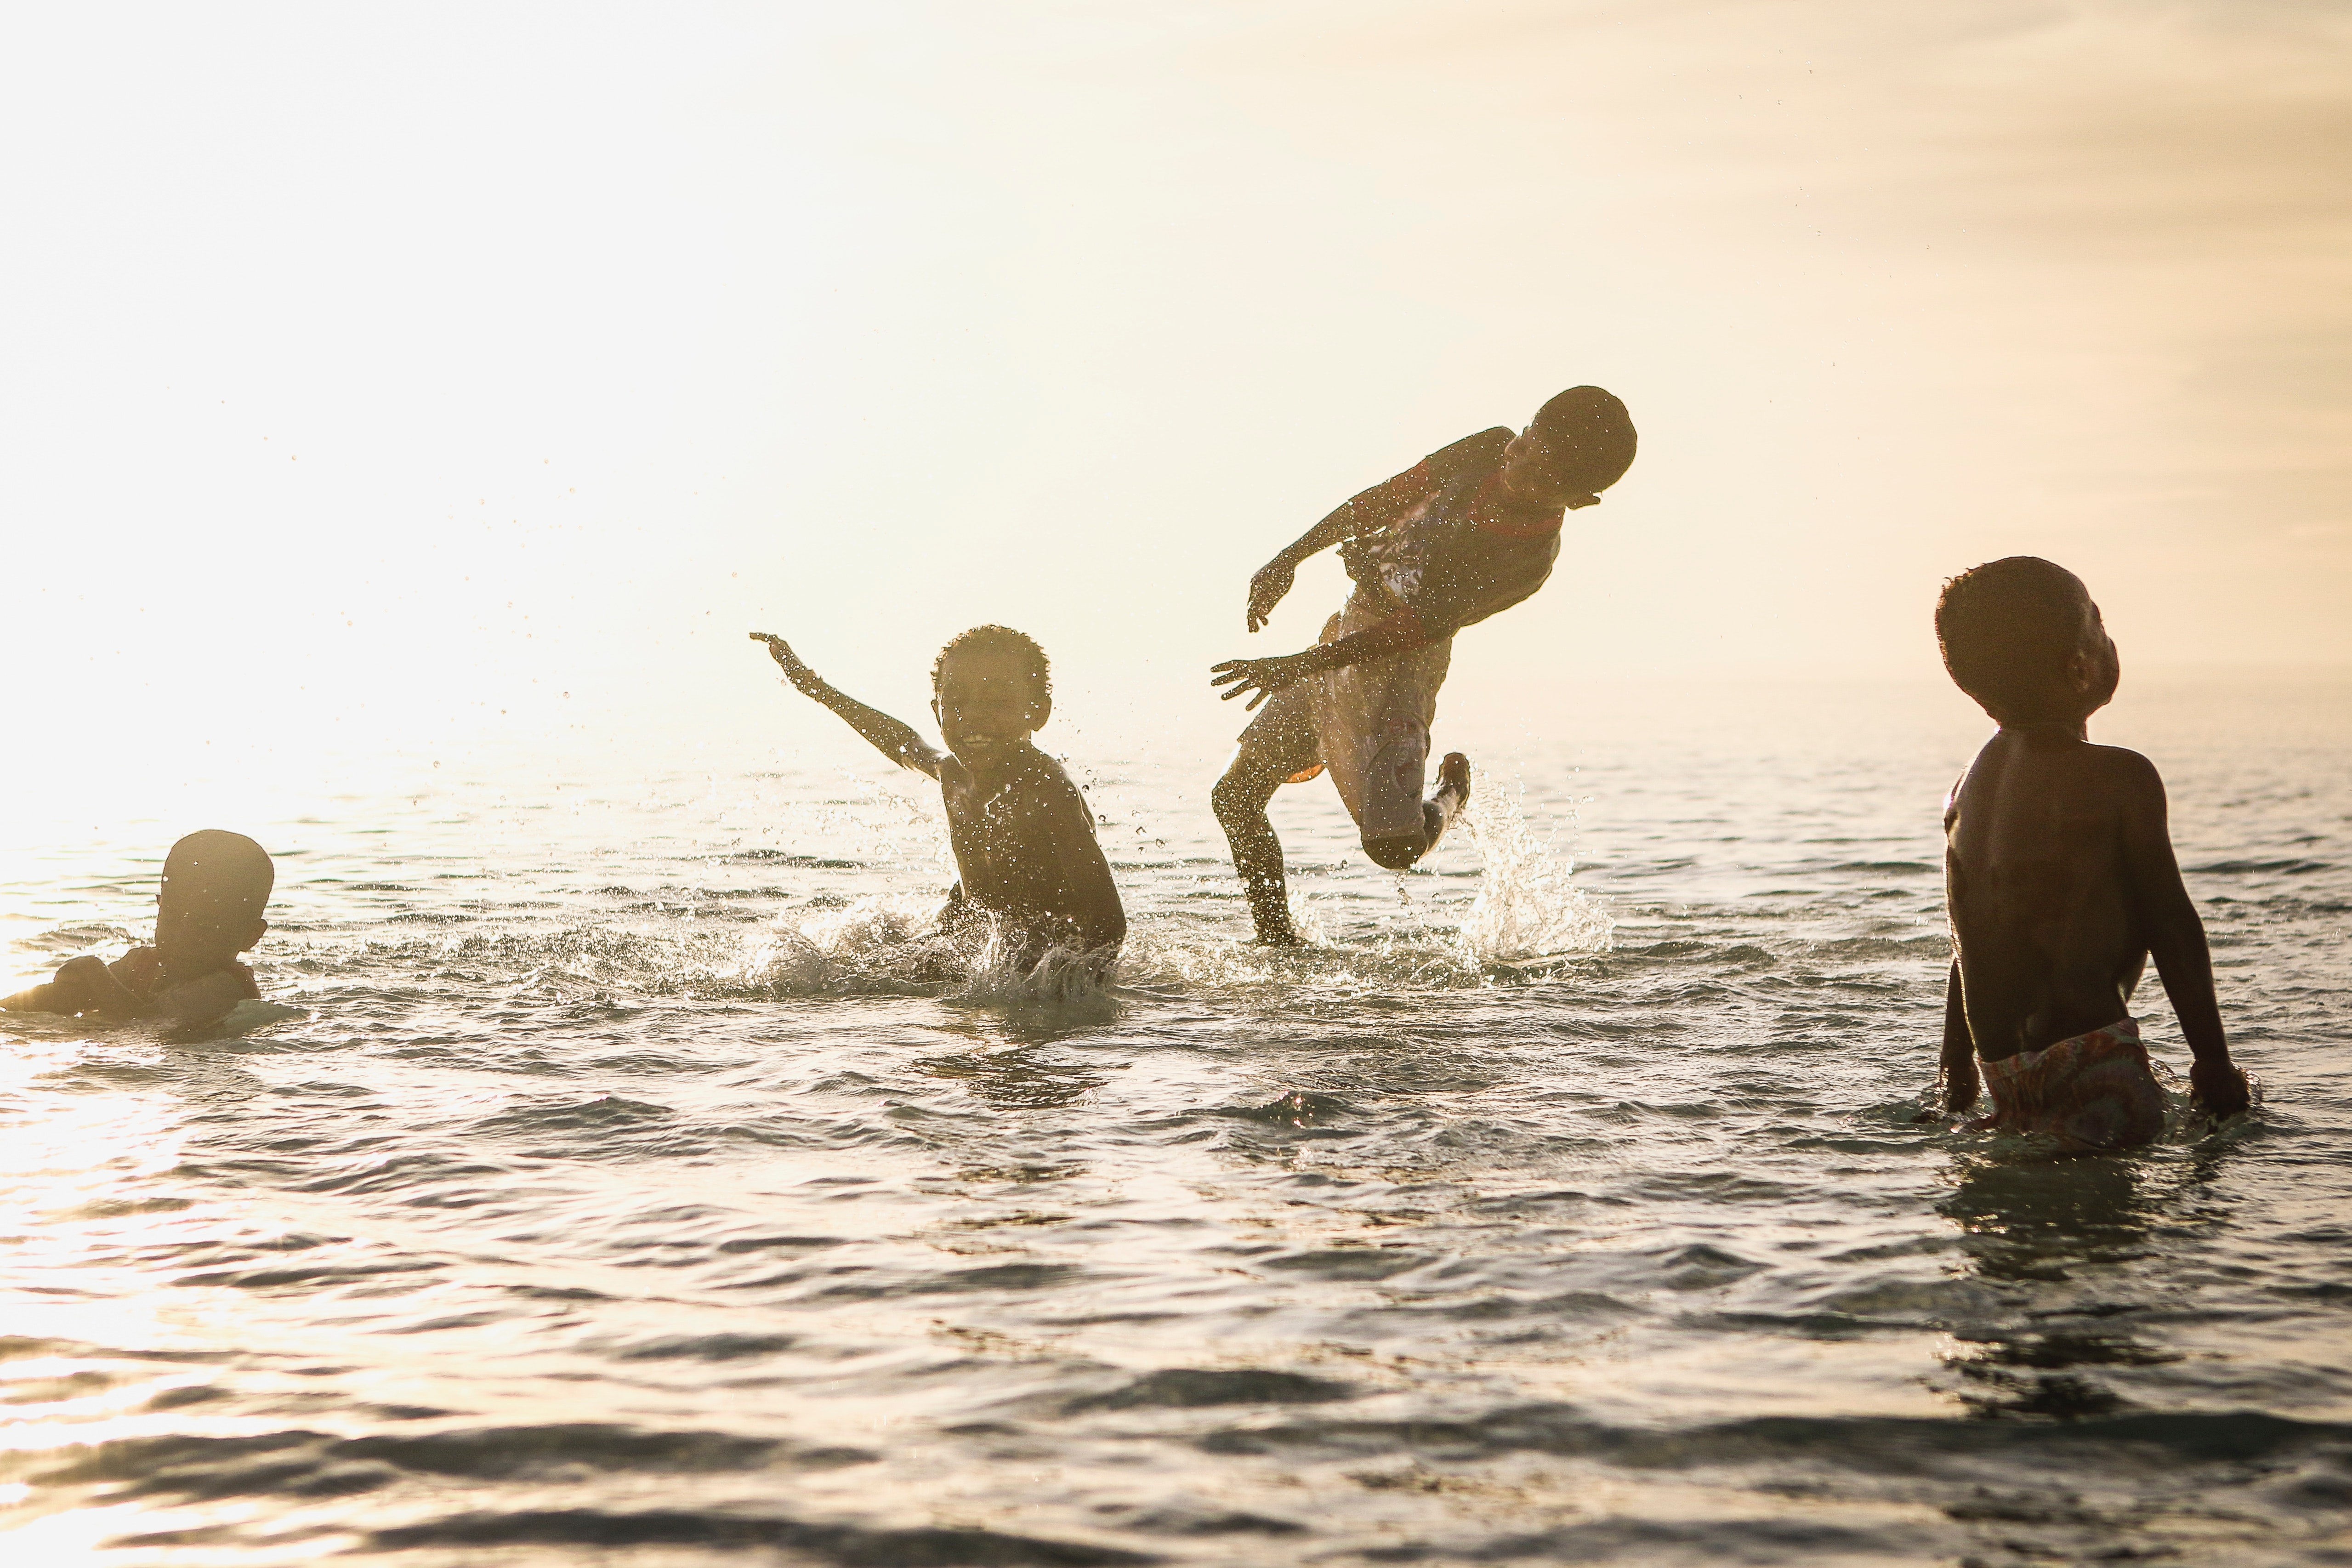 4 Person Playing in Ocean during Daytime, Children, Friends, Fun, Happy, HQ Photo